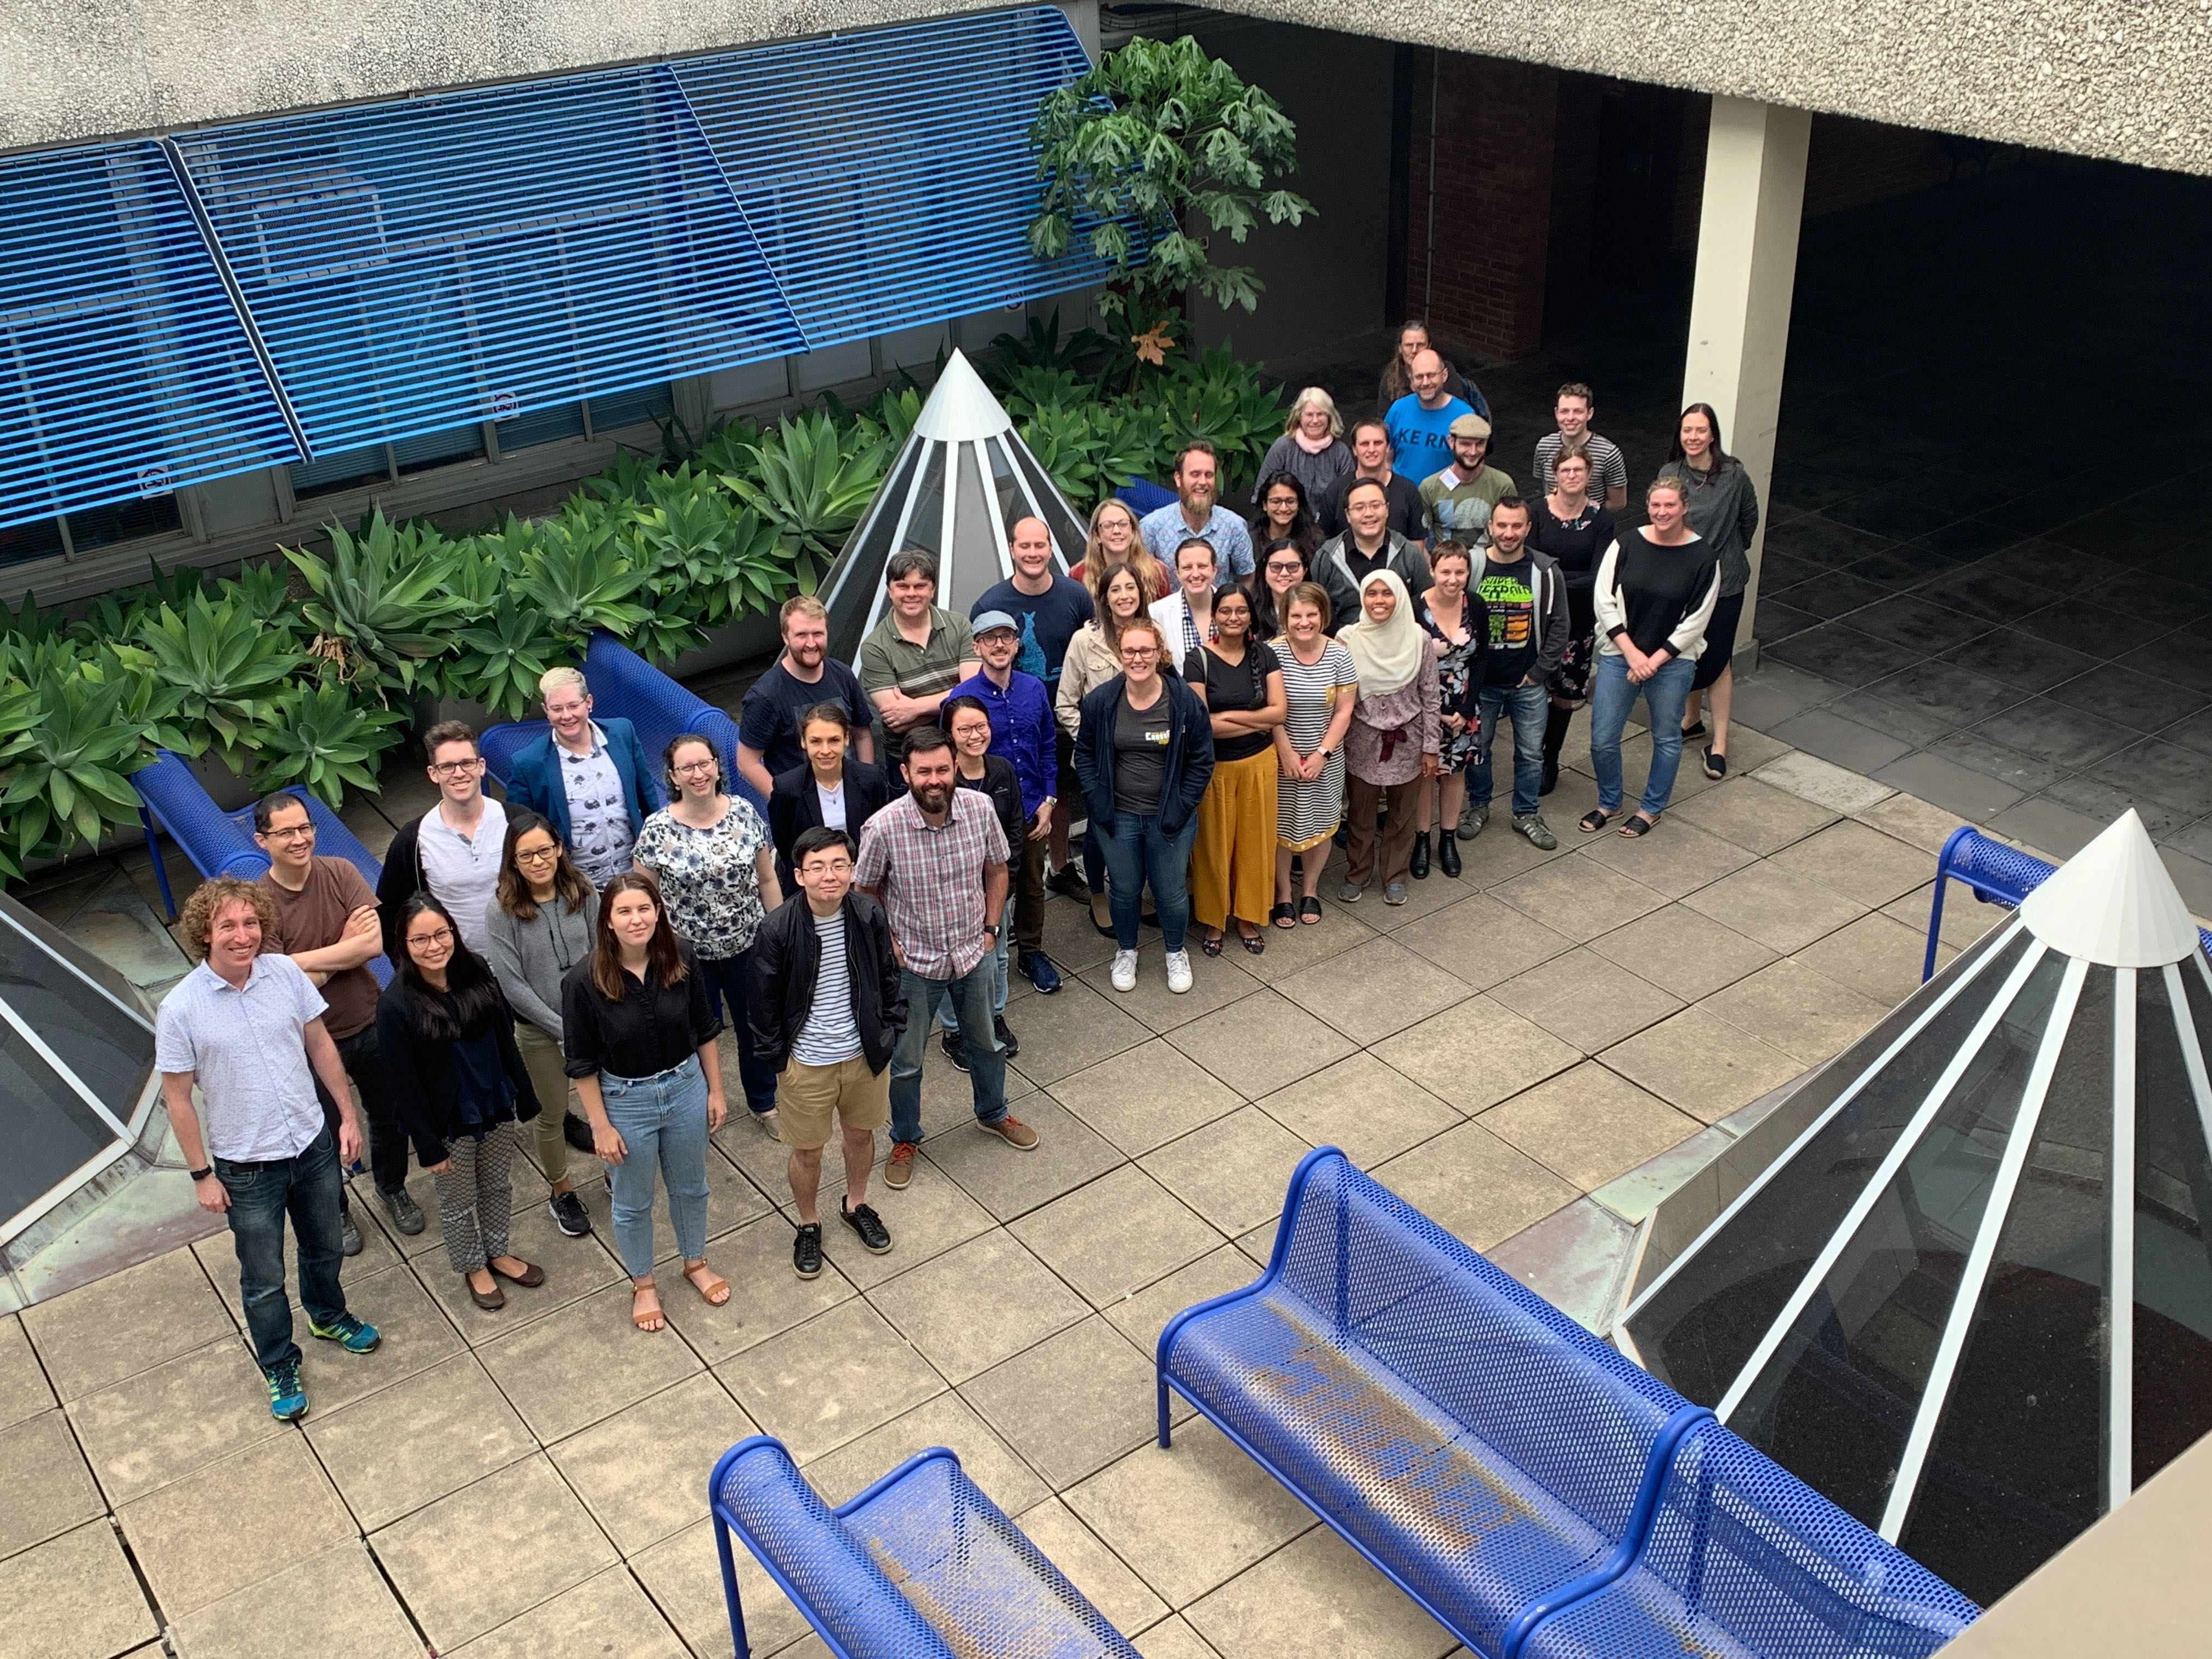 group photo of 40 participants at OzUnconf19